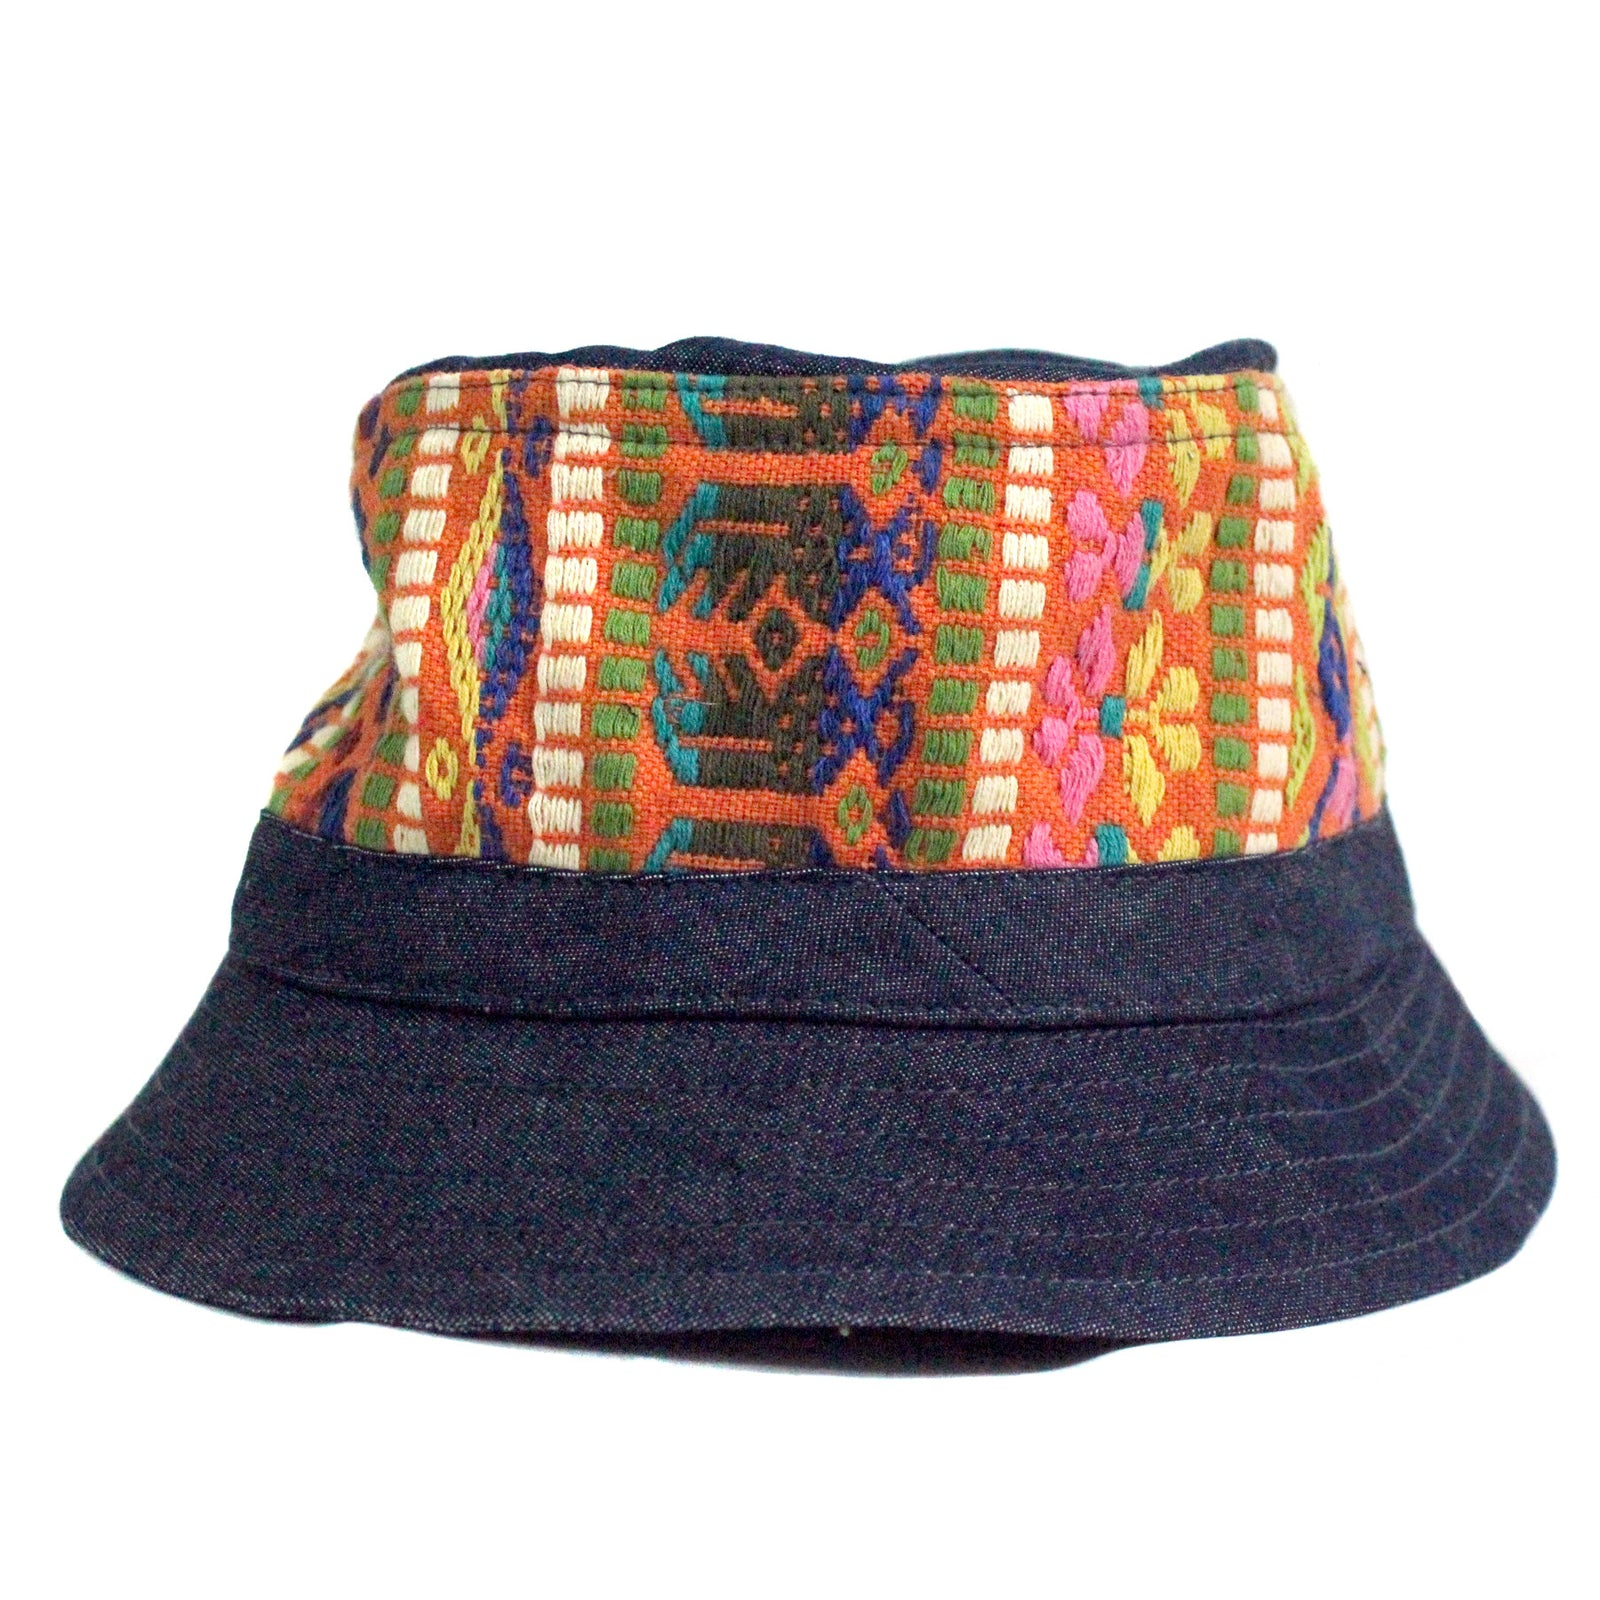 Handcrafted Bucket Hat for some music festival fashion inspiration